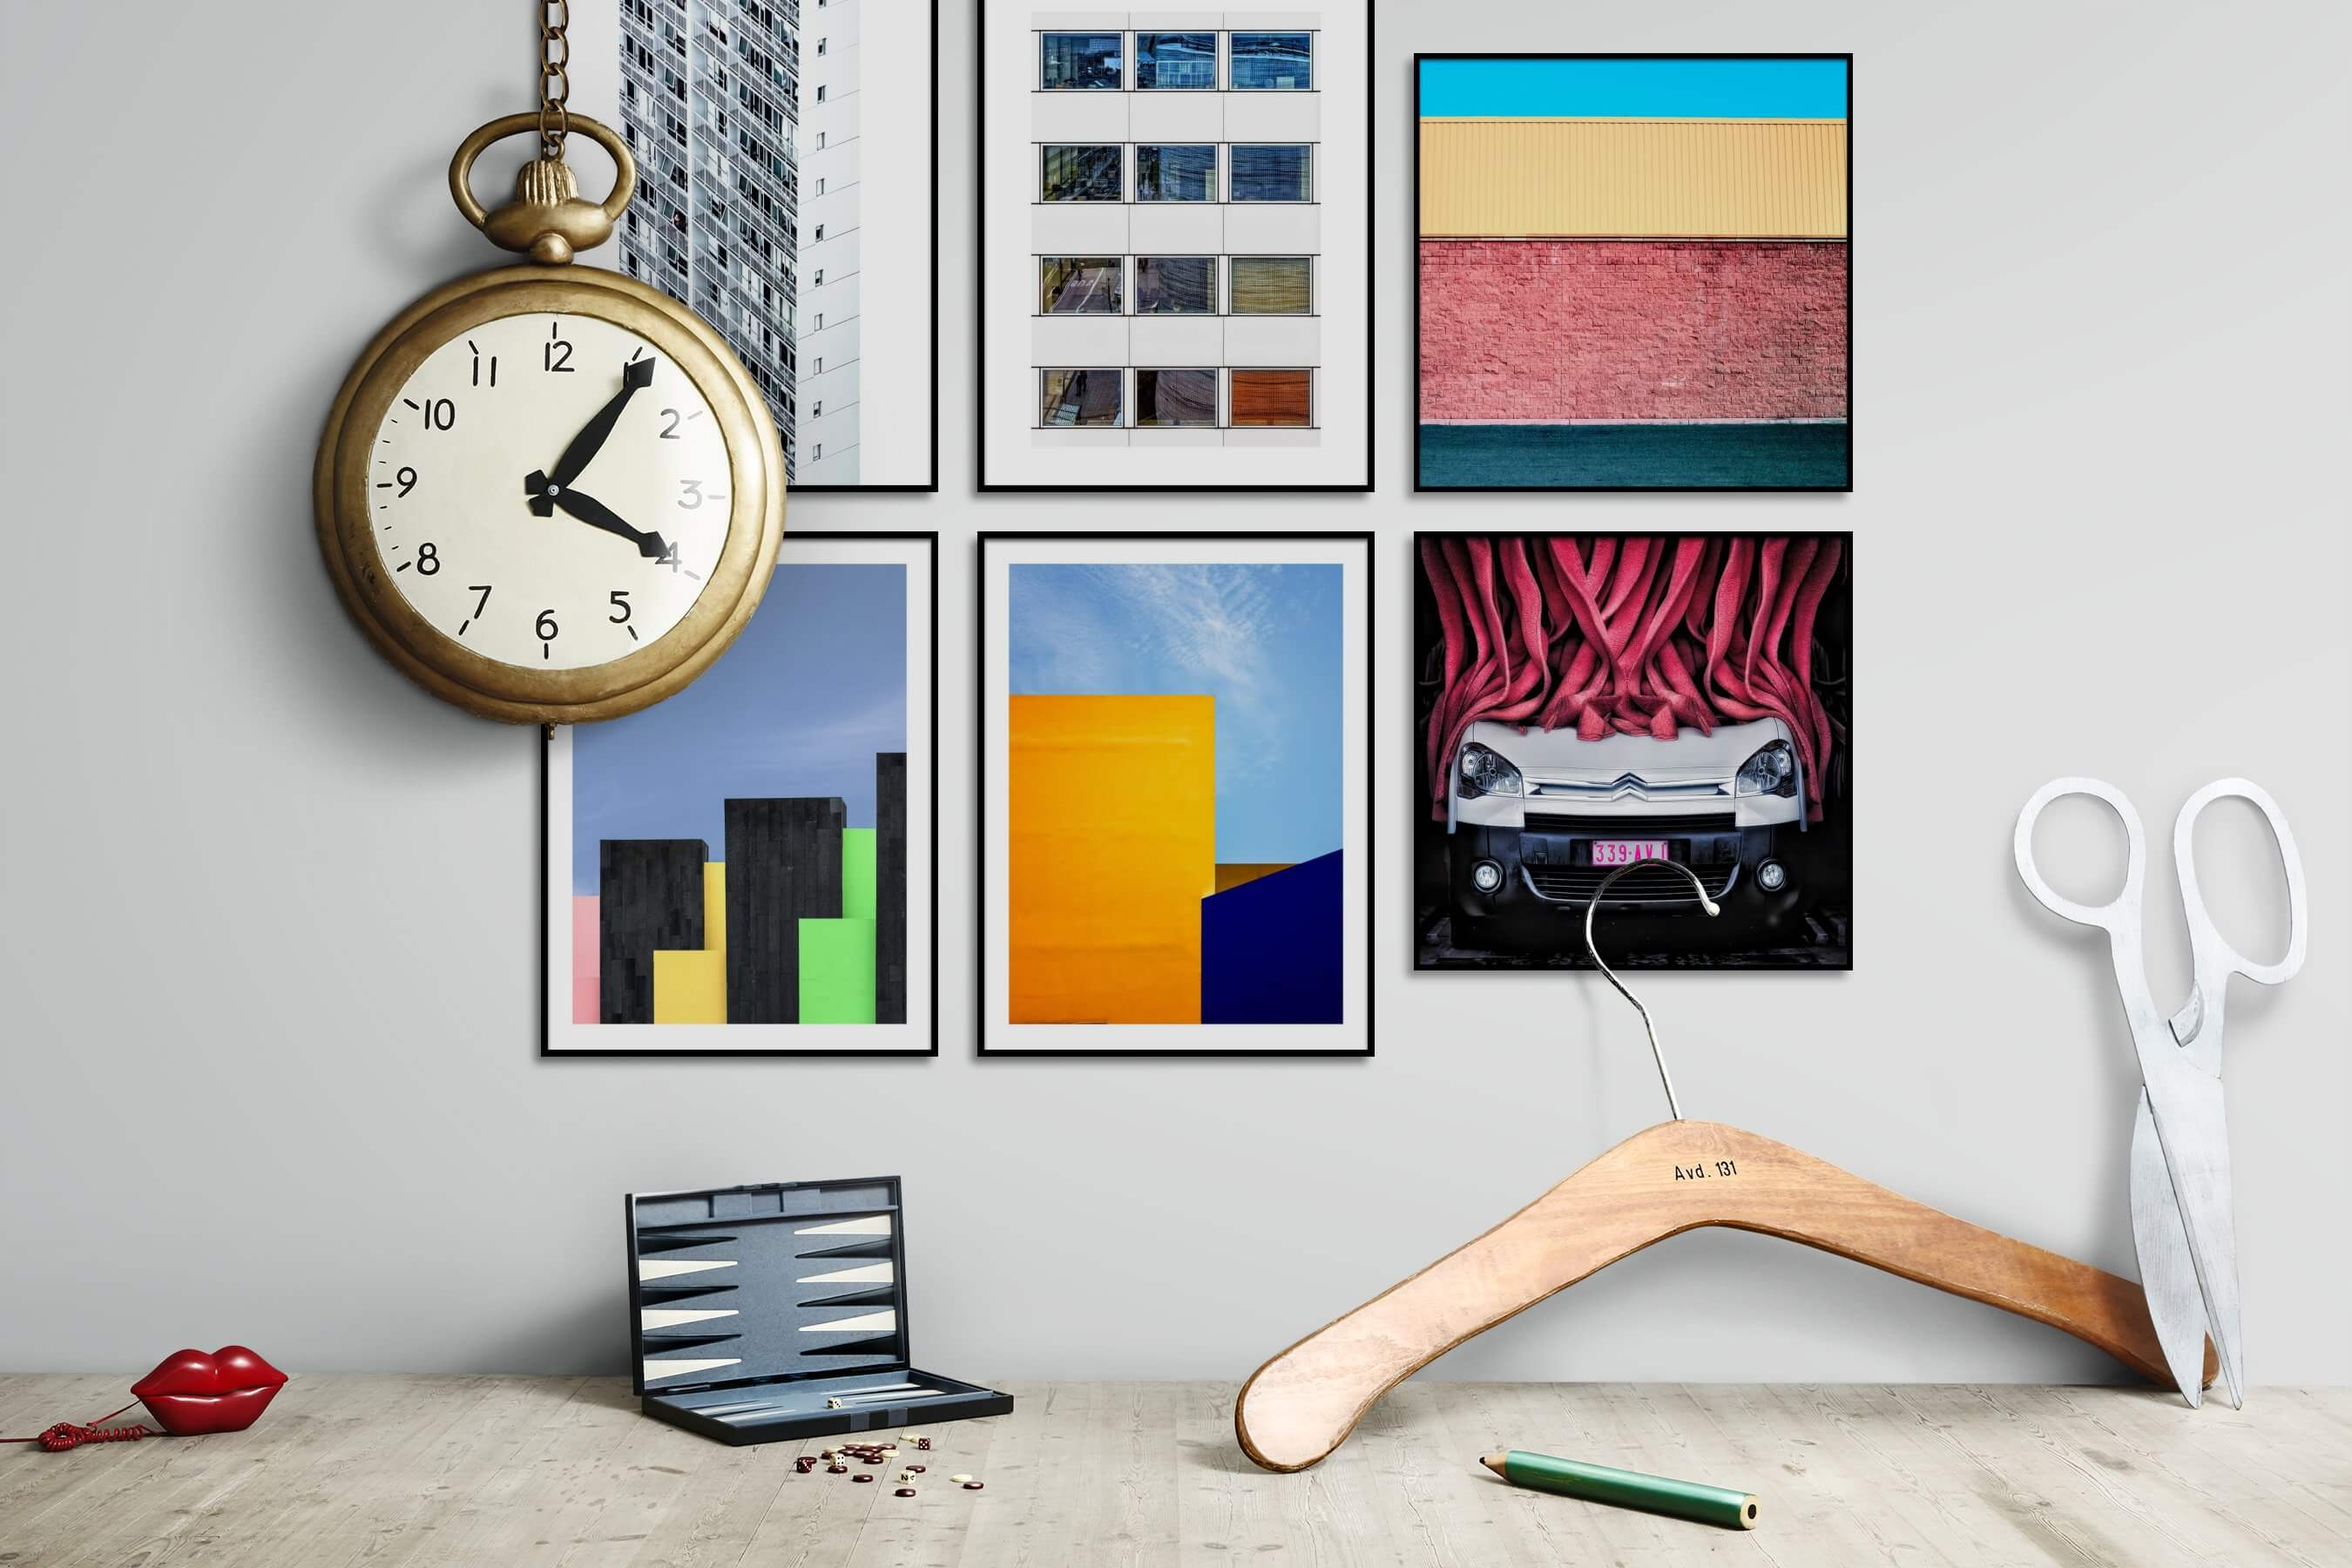 Gallery wall idea with six framed pictures arranged on a wall depicting For the Moderate, City Life, For the Minimalist, and Colorful